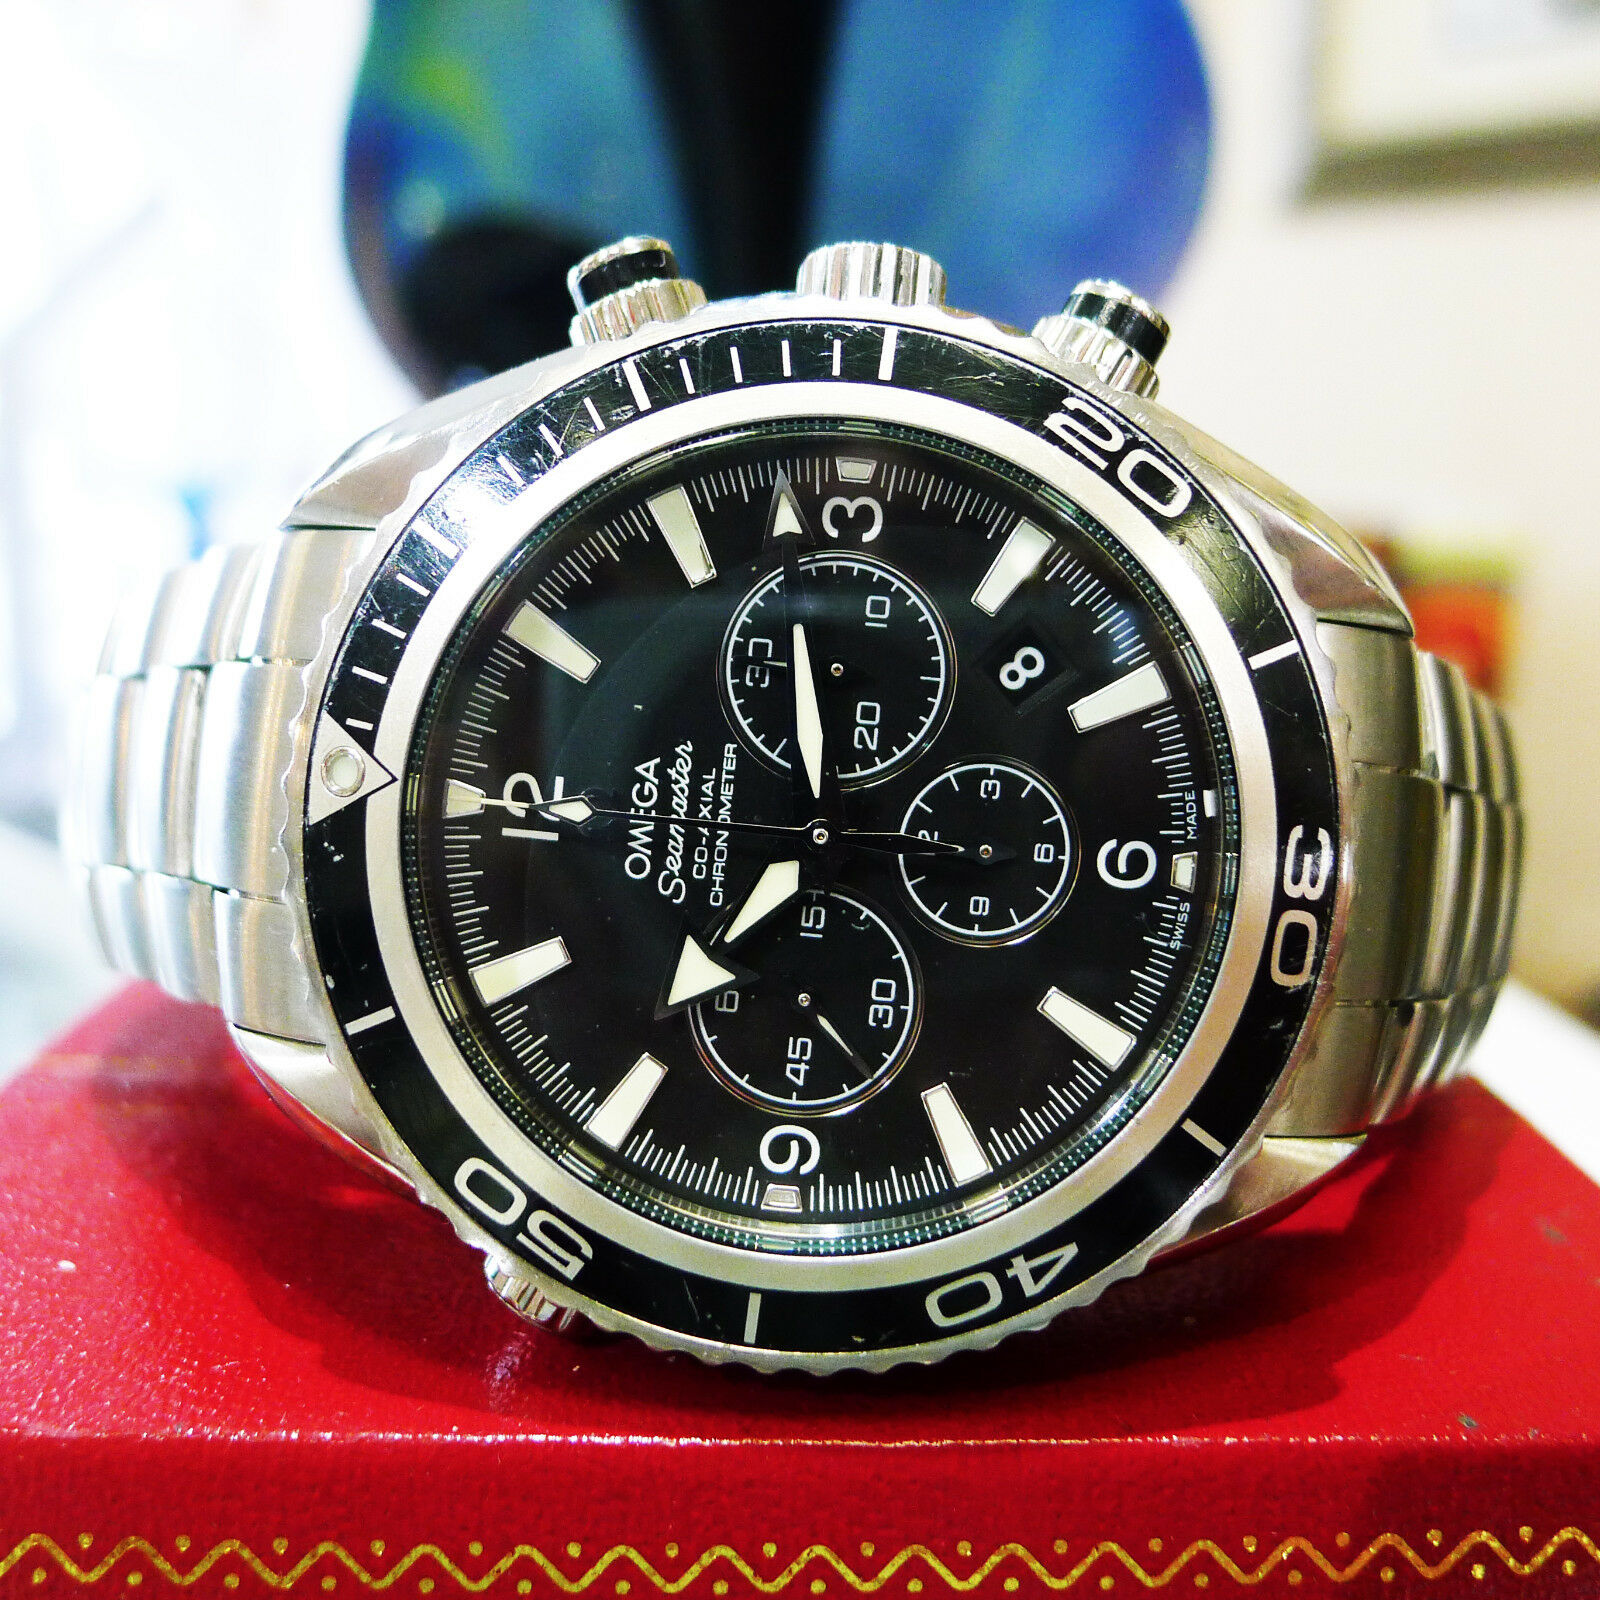 f067c059d7e1 Details about Omega Seamaster Planet Ocean Co-Axial Chronograph Black Dial Men s  Watch